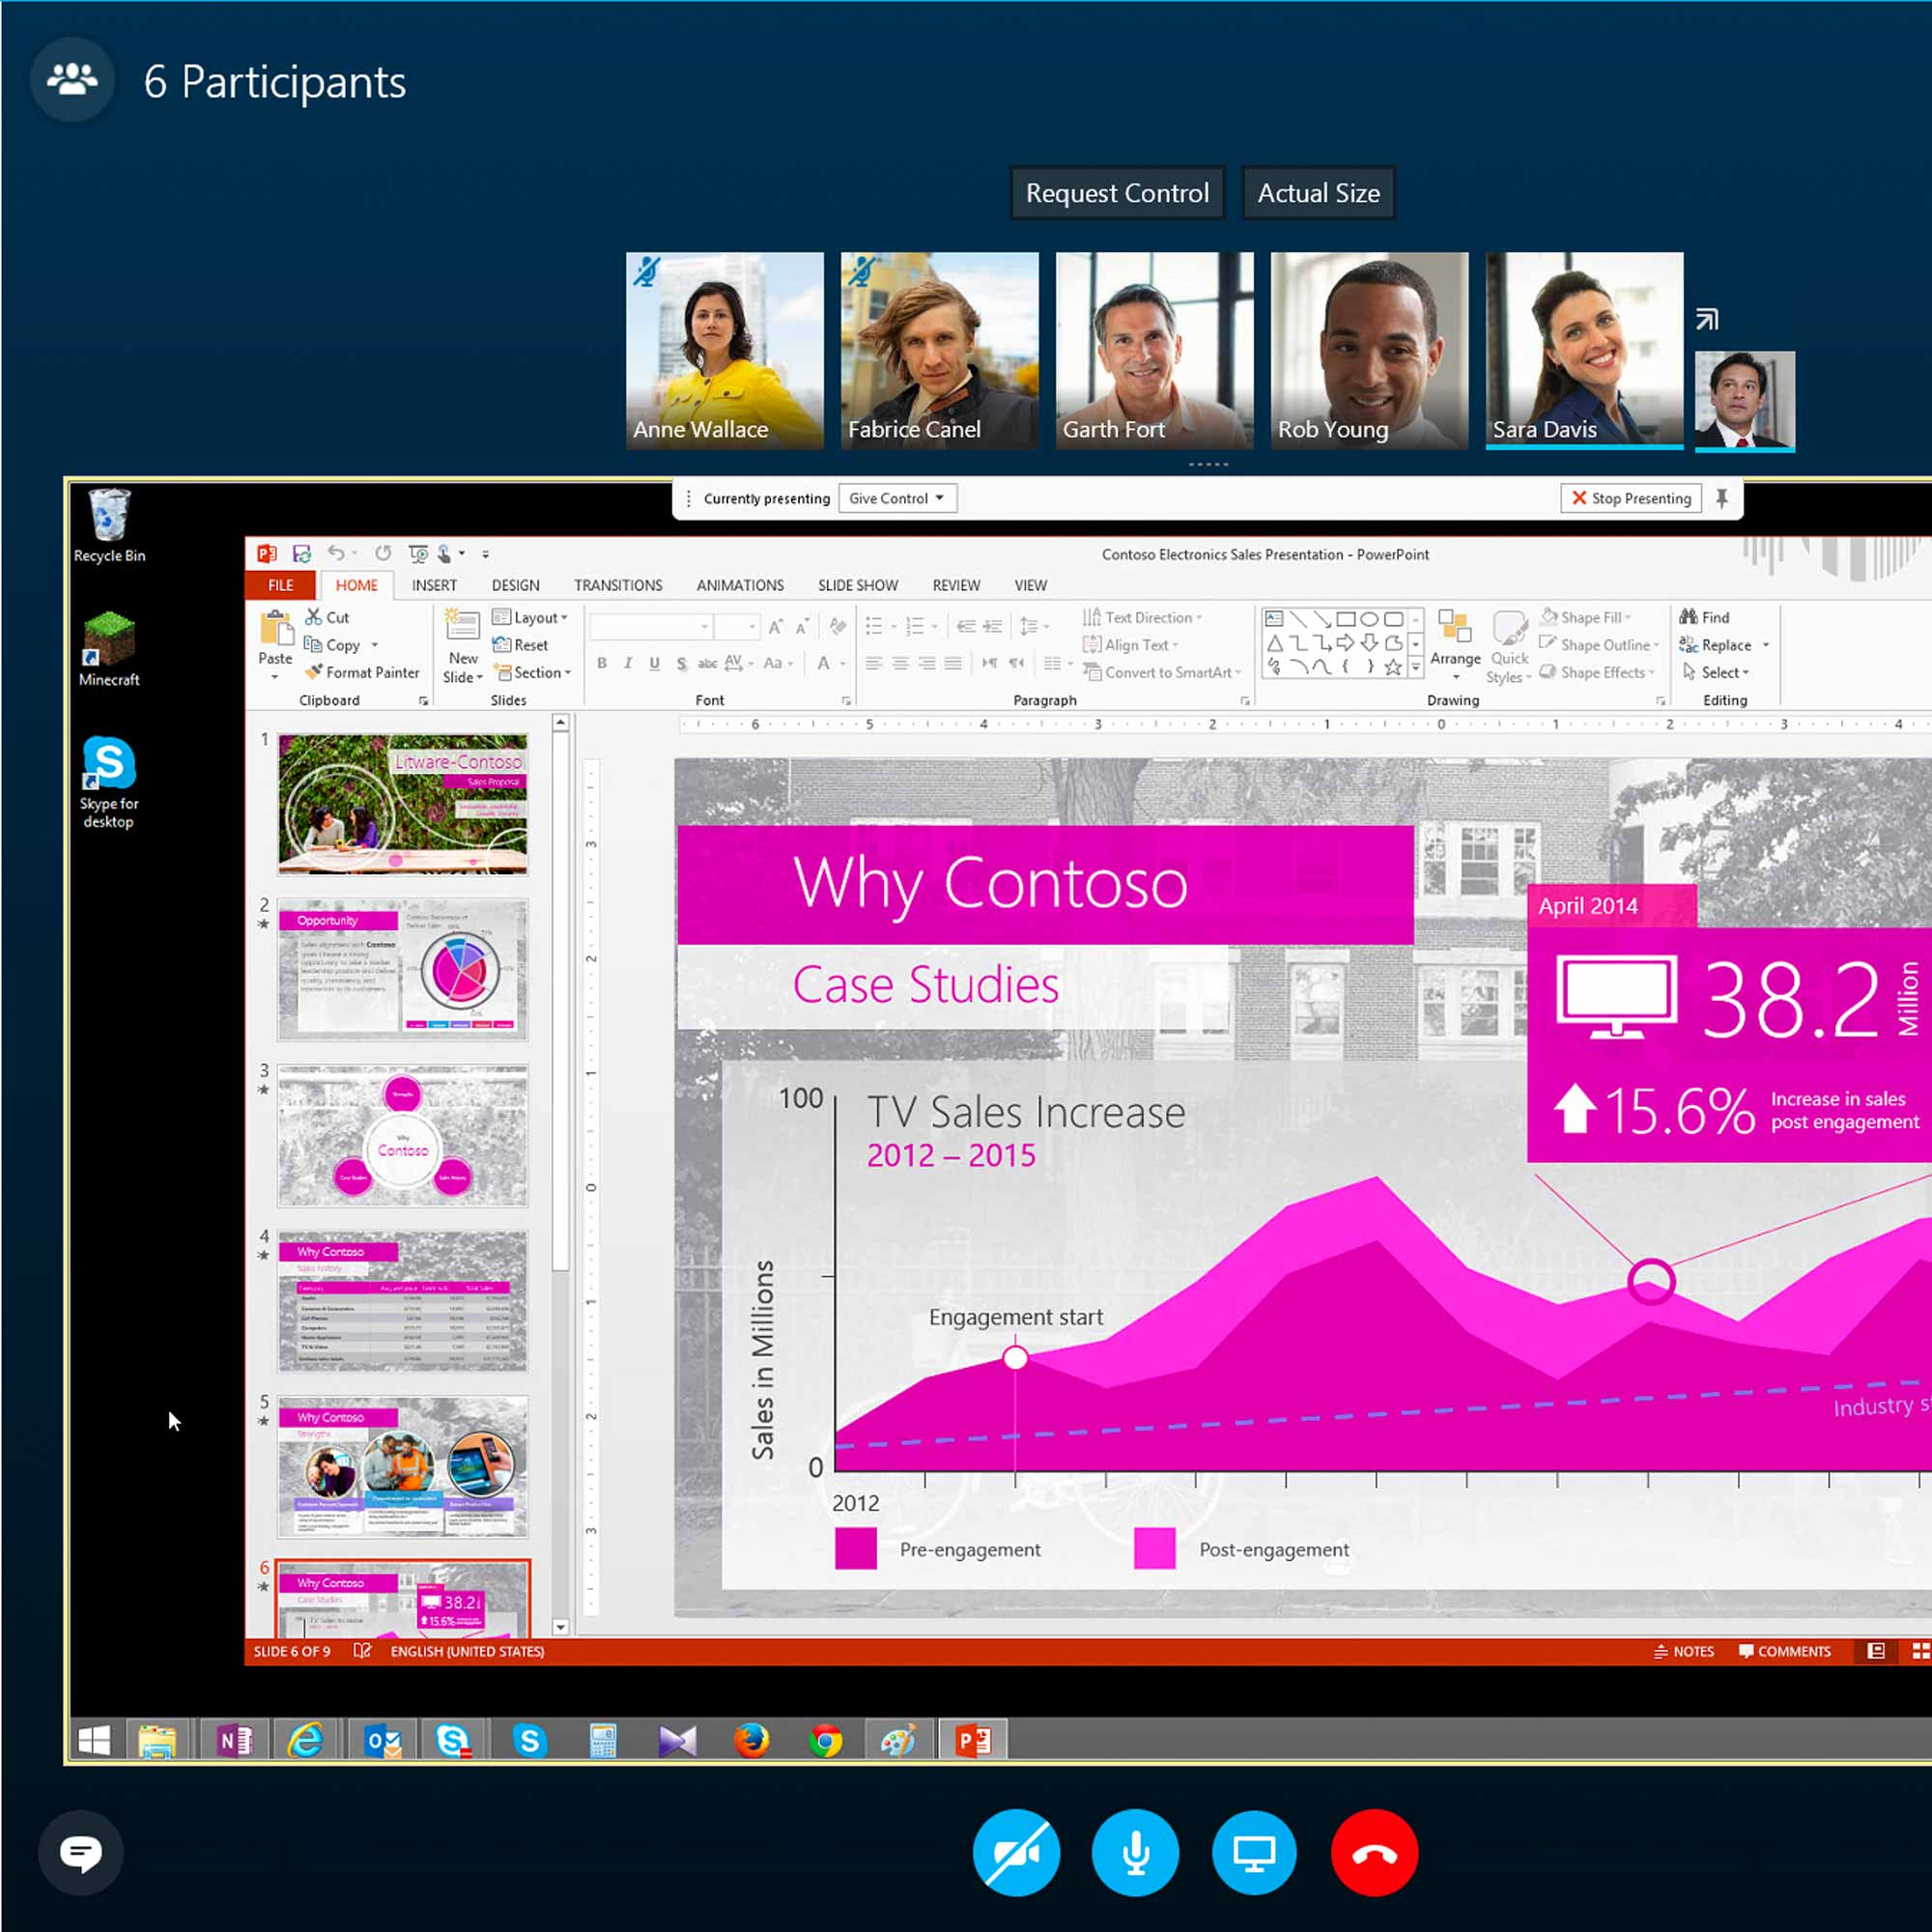 technologies-skype-for-business-page-banner